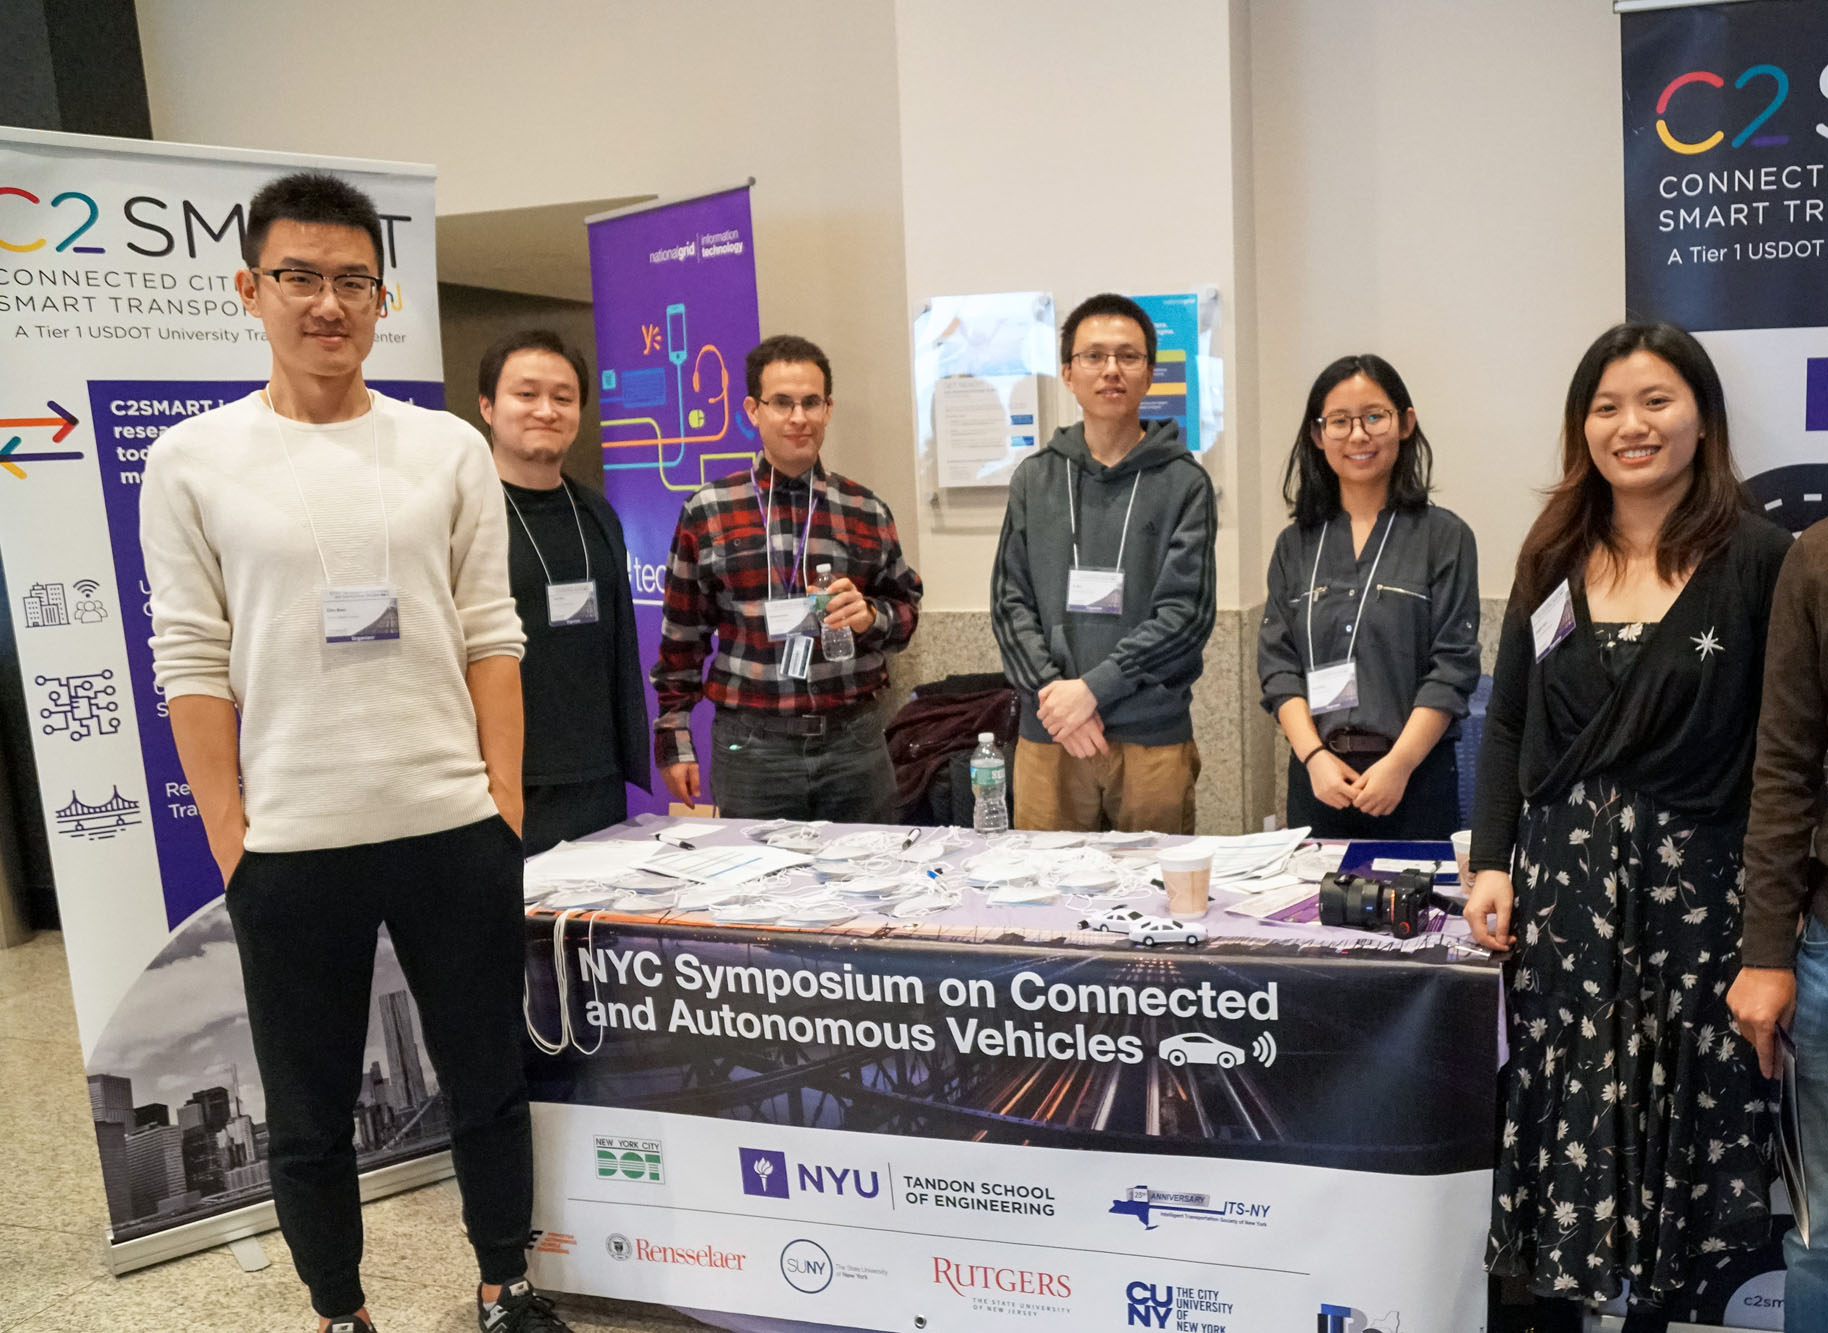 A host of student volunteers from C2SMART ensure the symposium ran smoothly, including (L to R) PhD students Zilin Bian, Fan Zuo, Reuben Juster, Di Sha, Ding Wang, Jingqin Gao.